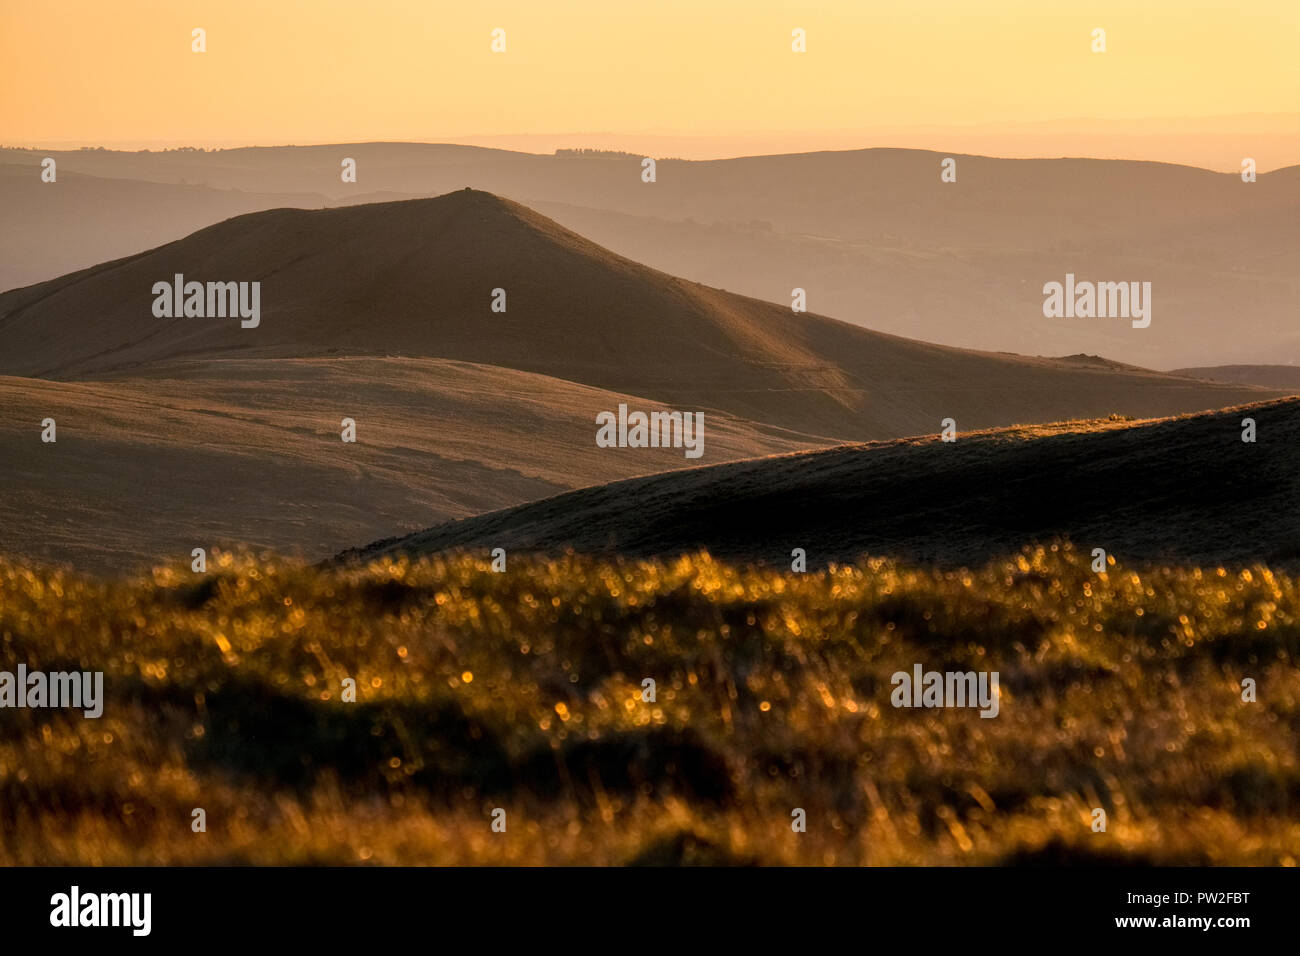 South Head seen from Kinder Scout at sunset, Peak District National Park,UK - Stock Image